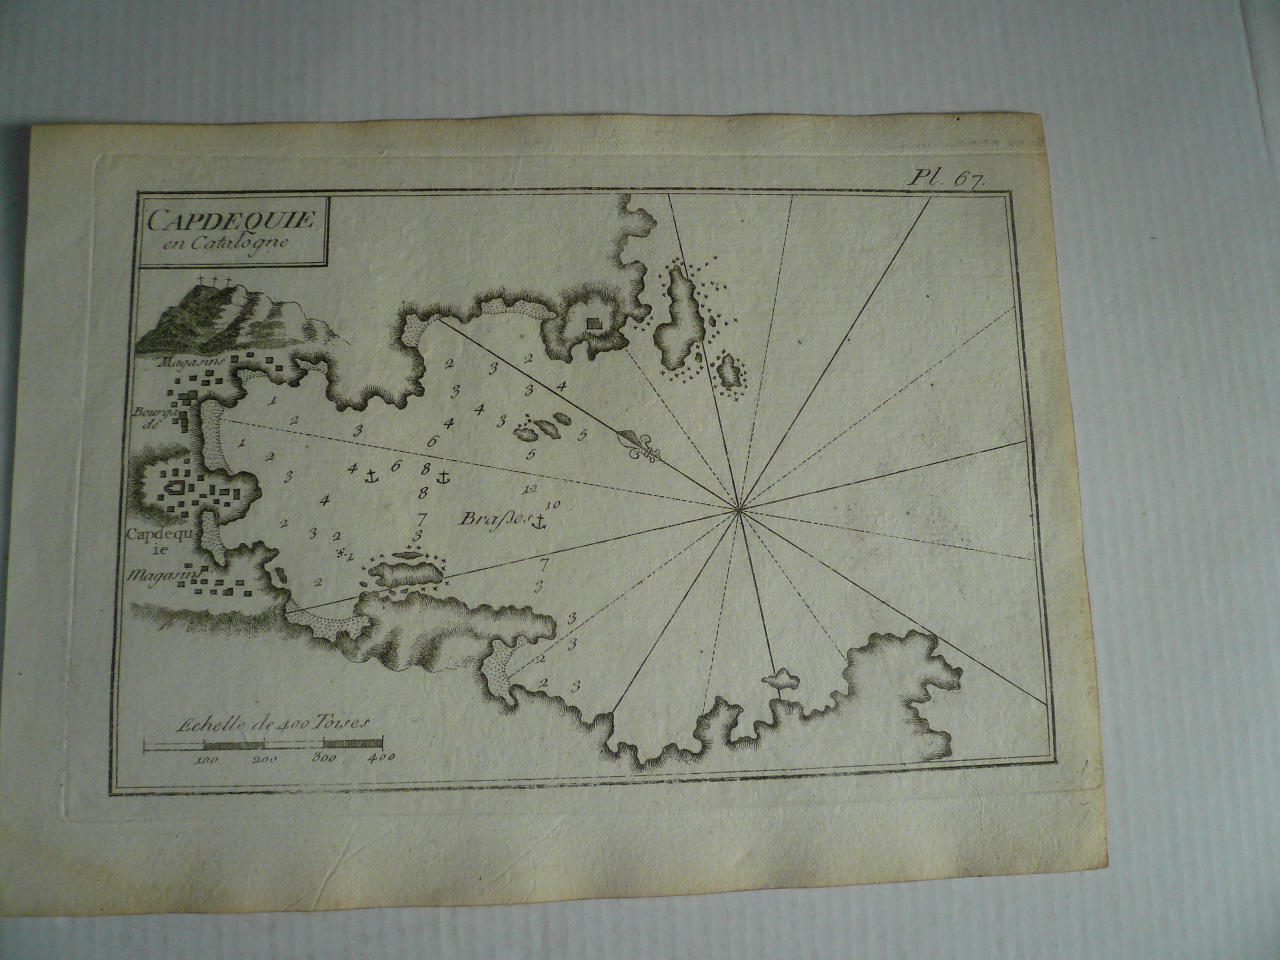 Cadaques, Catalonia, anno 1795, Roux J  Copperengraving, edited